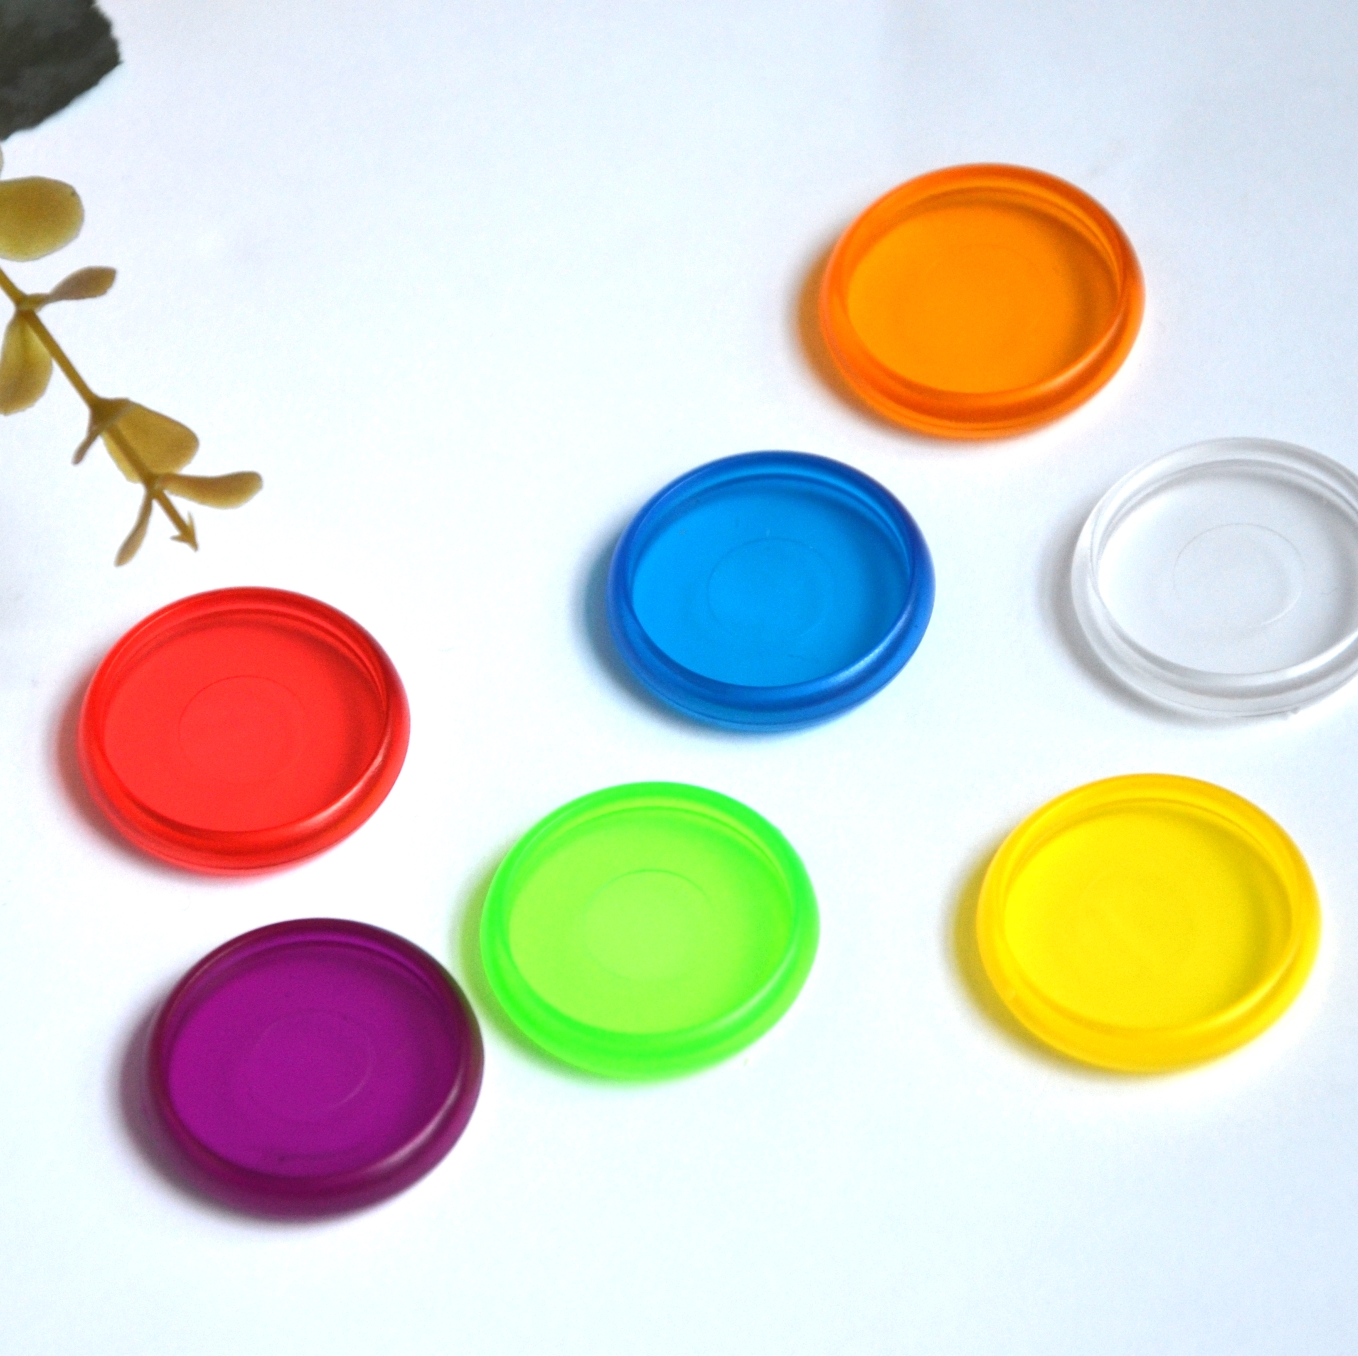 100pcs 28mm Notebook Disc Color Mushroom Hole Plastic Ring Discs Removable Loose-leaf Notebook DIY Hand Book Accessories Ring